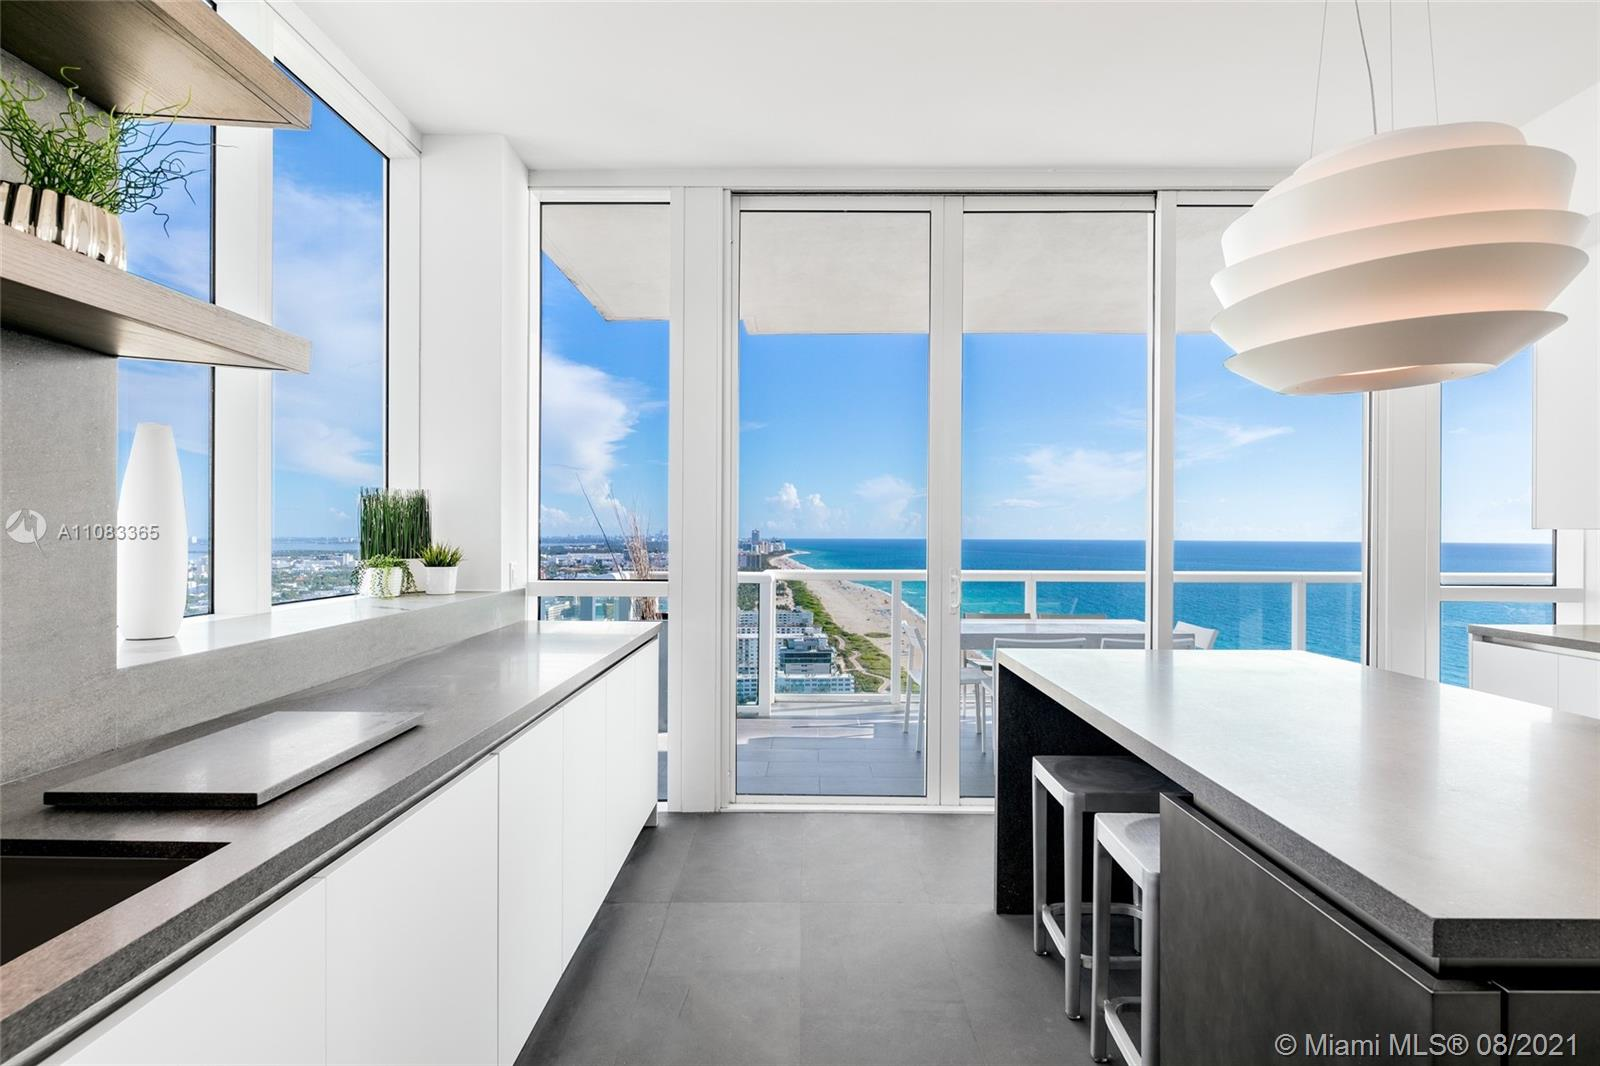 """A picturesque showcase of A-list Miami Beach living, this contemporary trouvaille showcases expansive flow-thru living spaces and breathtaking 270° unobstructed, direct ocean and city views. Luxurious finishes and elegant design flow through the residence, from its stunning private entry foyer and new kitchen to the deeply spacious balconies throughout. This South Beach gem also comes with a highly desirable addition: a split-level, 435-sq.-ft., air-conditioned cabana with a full bathroom, and distinct ocean views from its own 200-sq.-ft. balcony. Just 1 of 14 made, the cabana is a tasteful extension perfectly suited for guests and makes this trophy residence perfect for the discerning owner who is searching for that certain """"Je ne sais quoi"""" that simply cannot be replicated."""